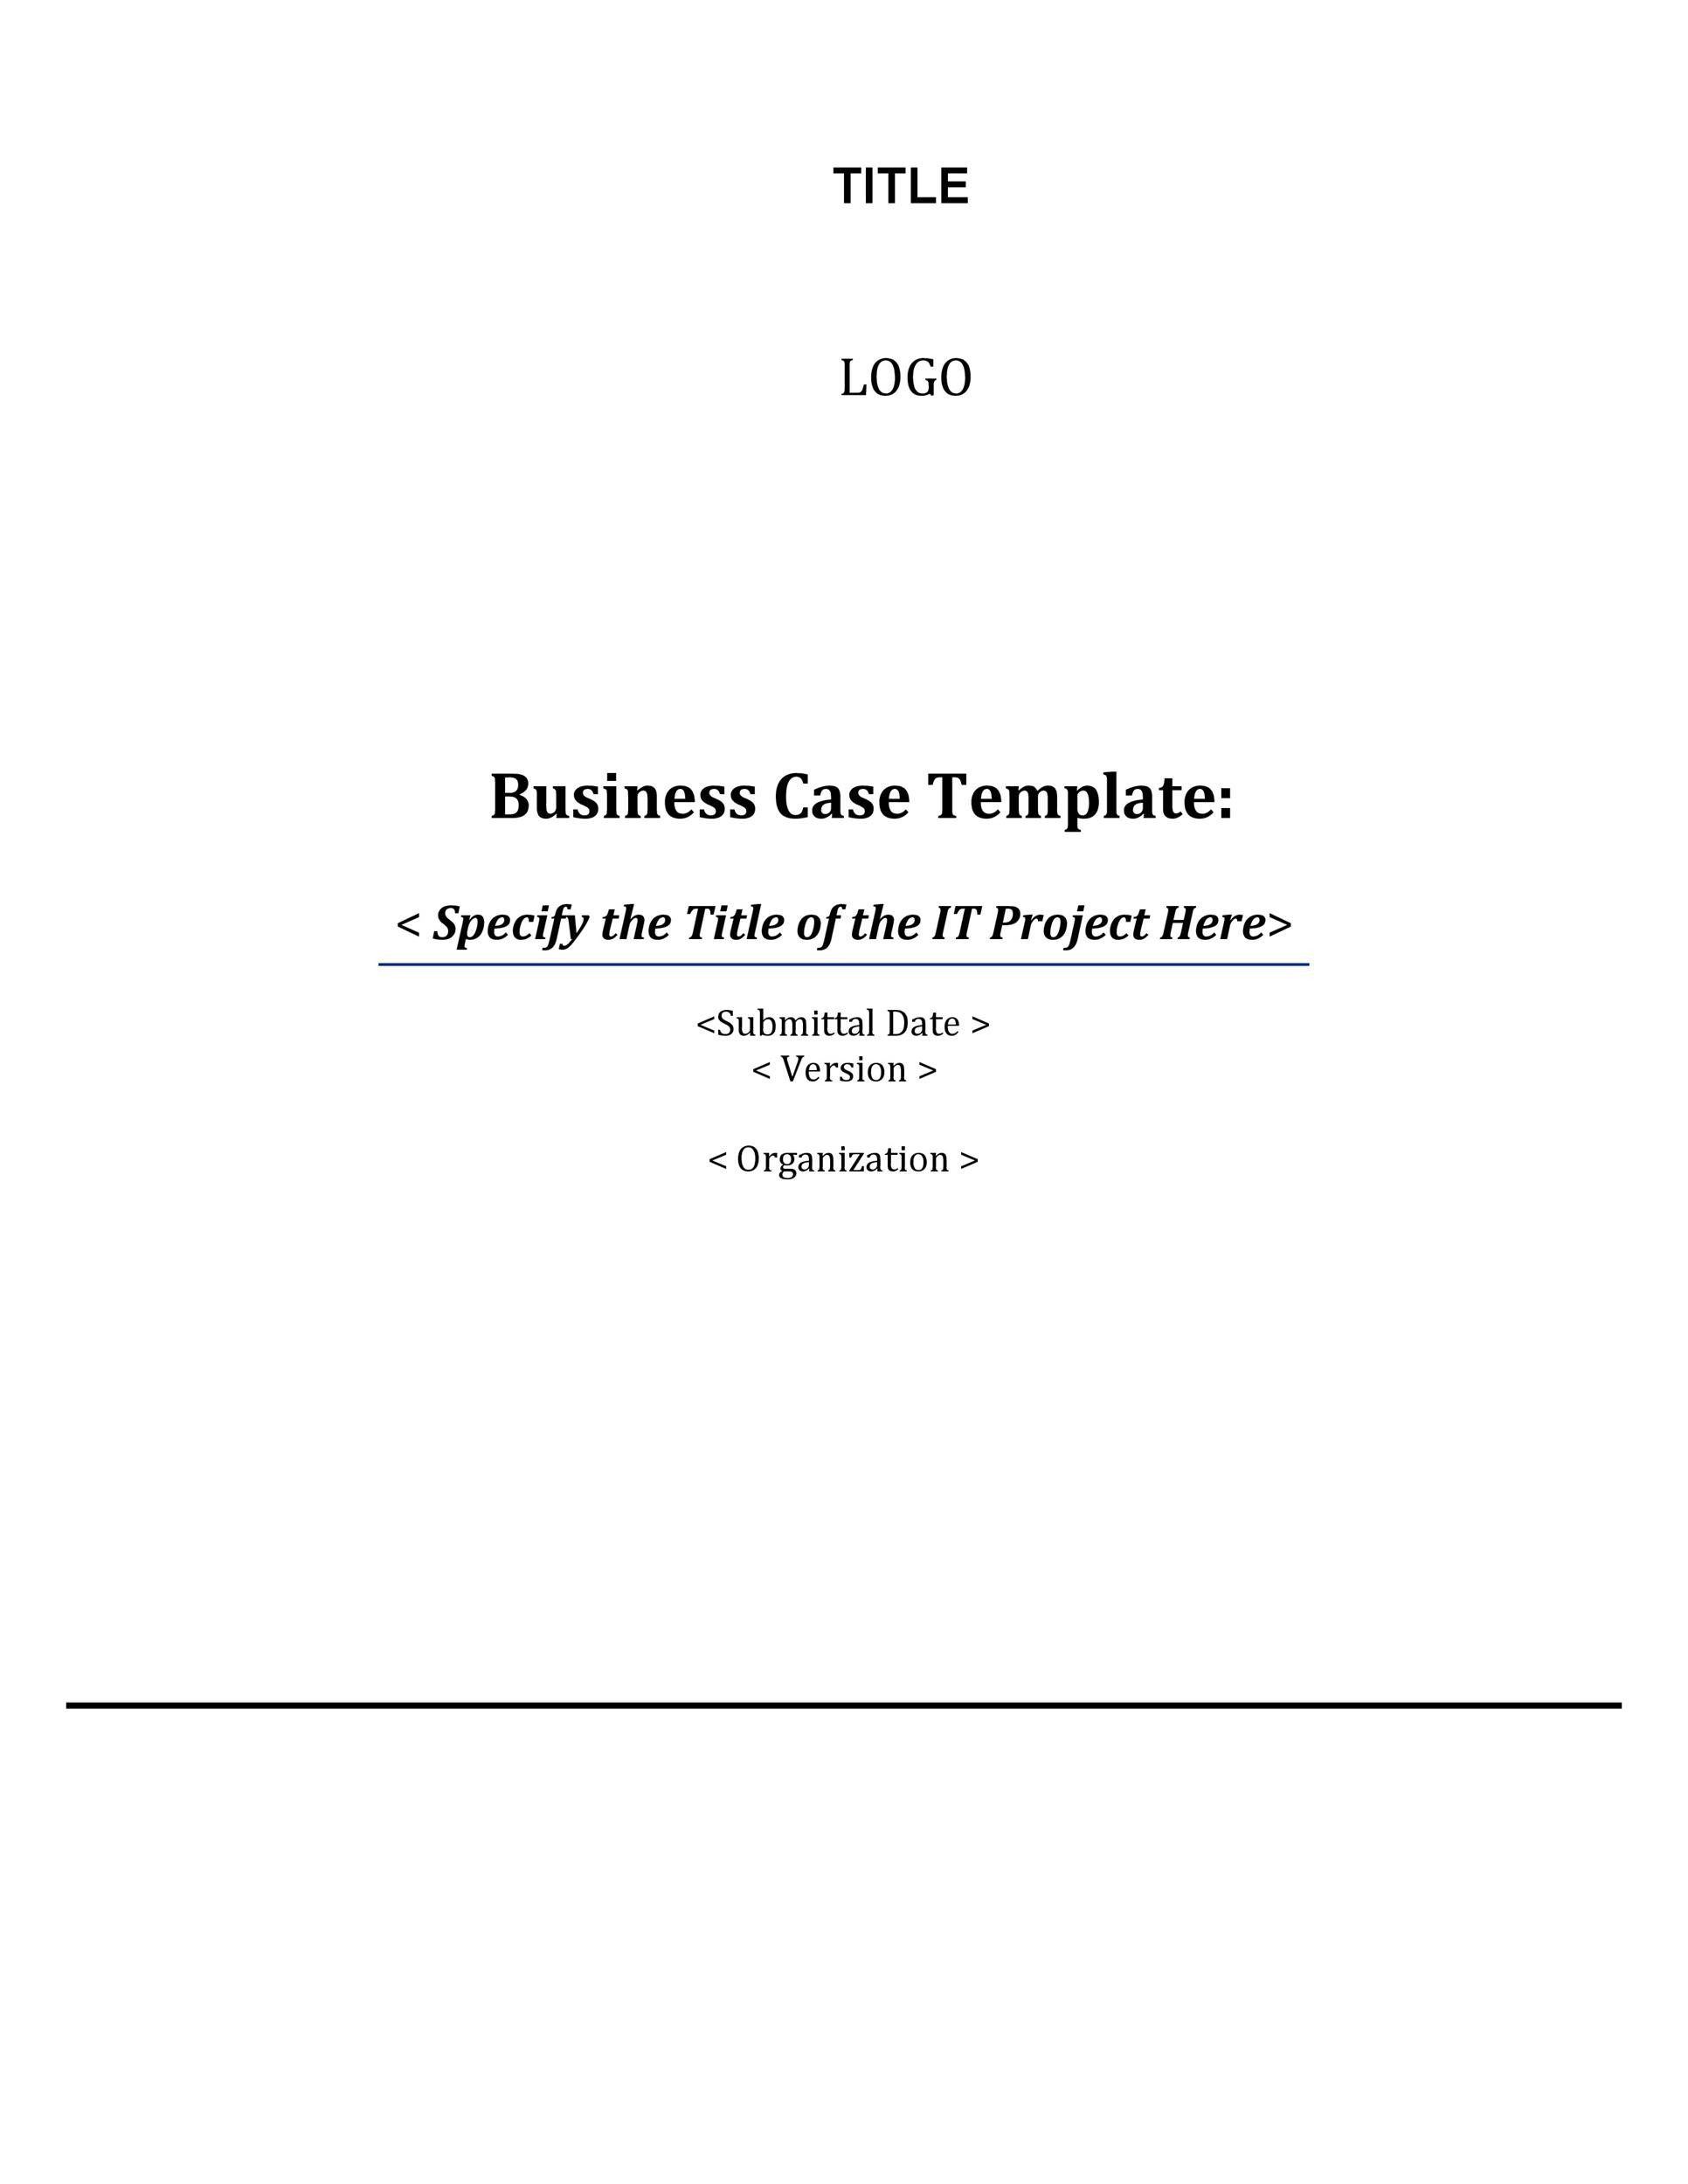 it project business case template 52 It project business case – Simple Business Case Template